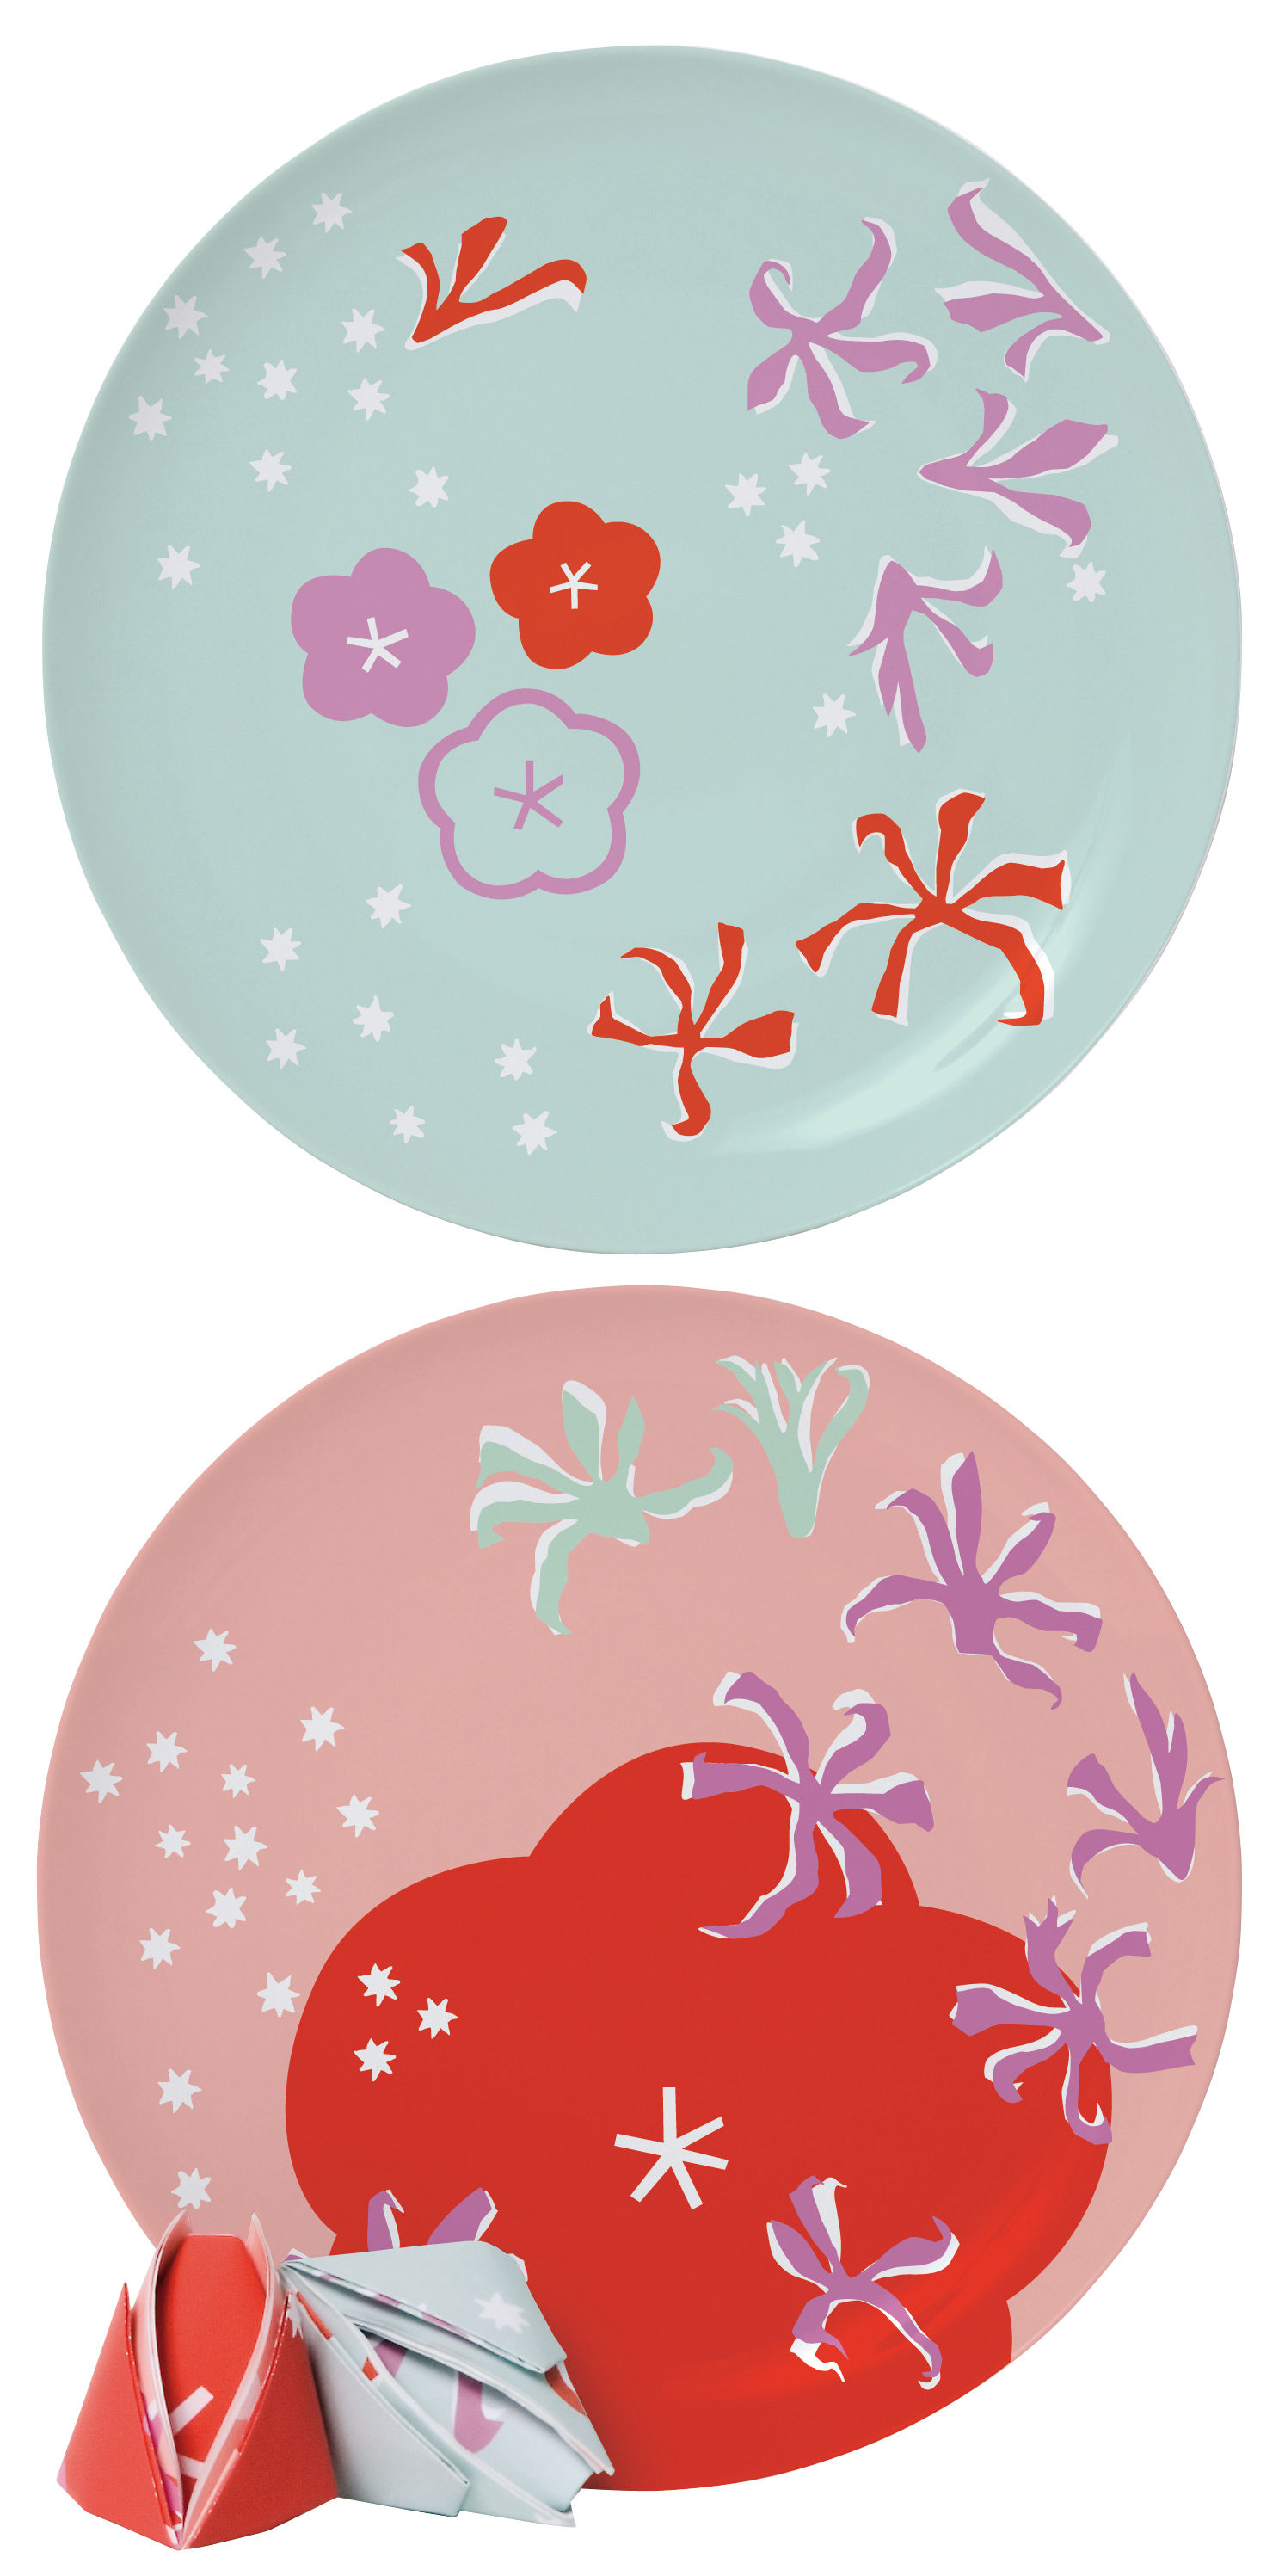 Kitchenware - Fun in the kitchen - Surface 02 - Poppy for two Plate - Set of 2 by Domestic -  - China